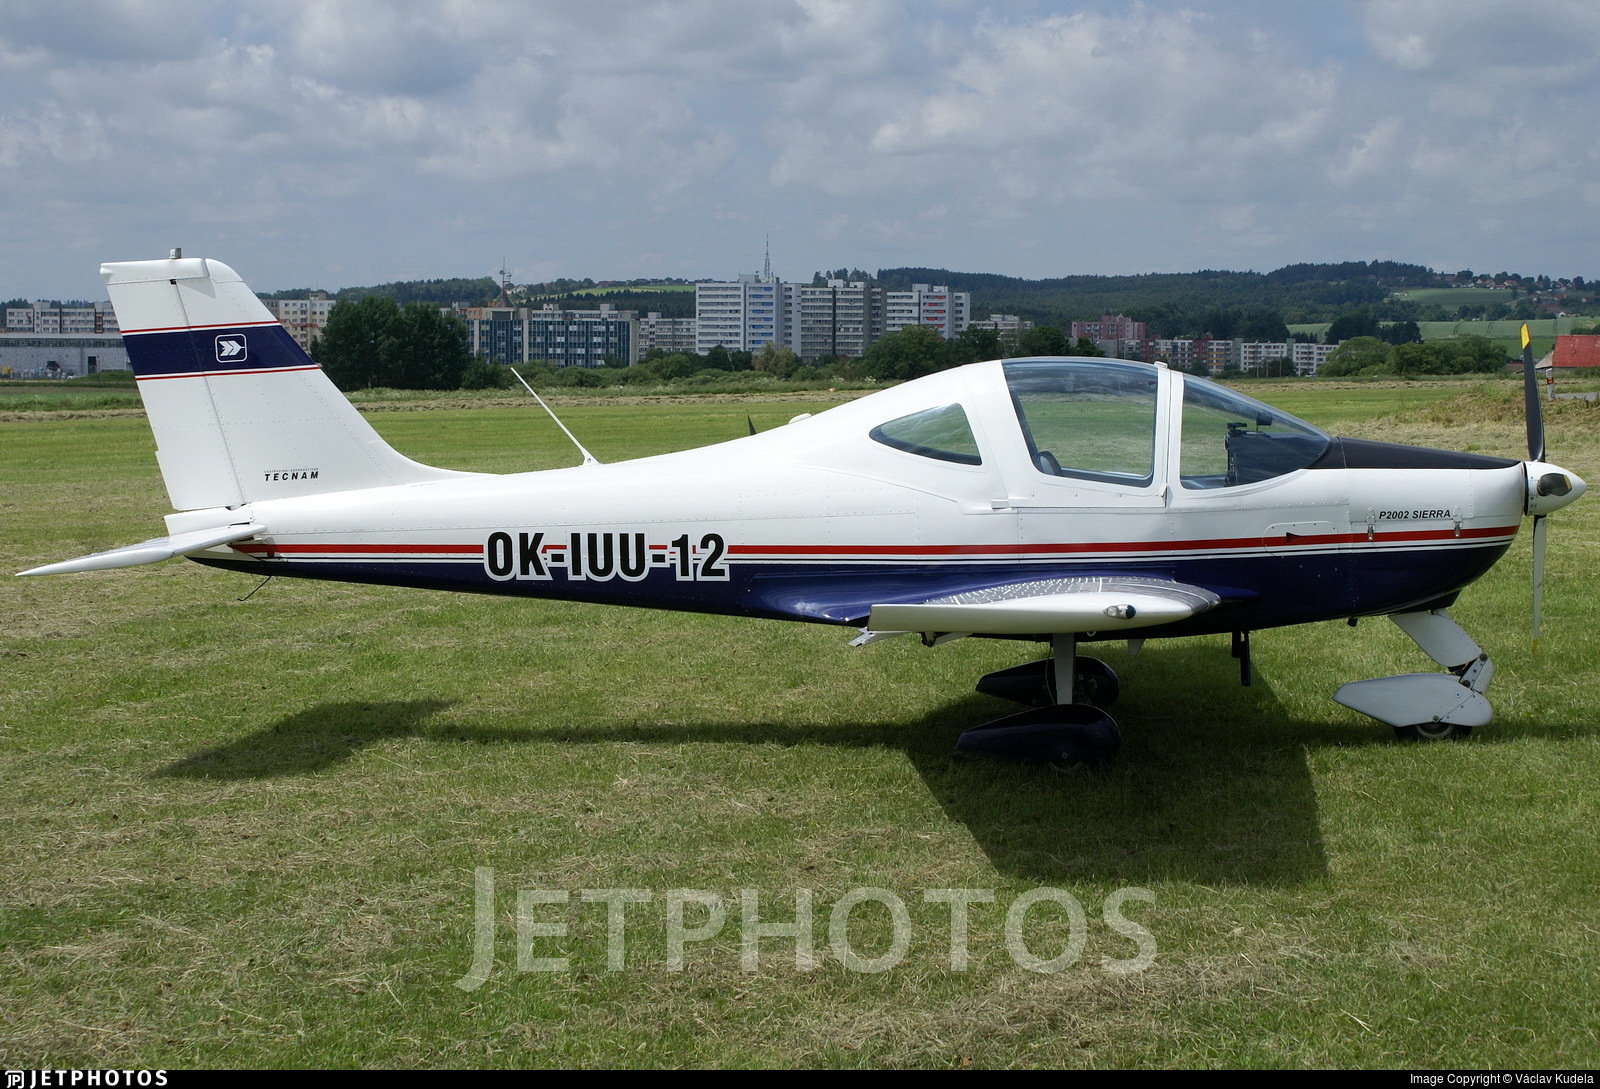 OK-IUU 12 - Tecnam P2002 Sierra - Private